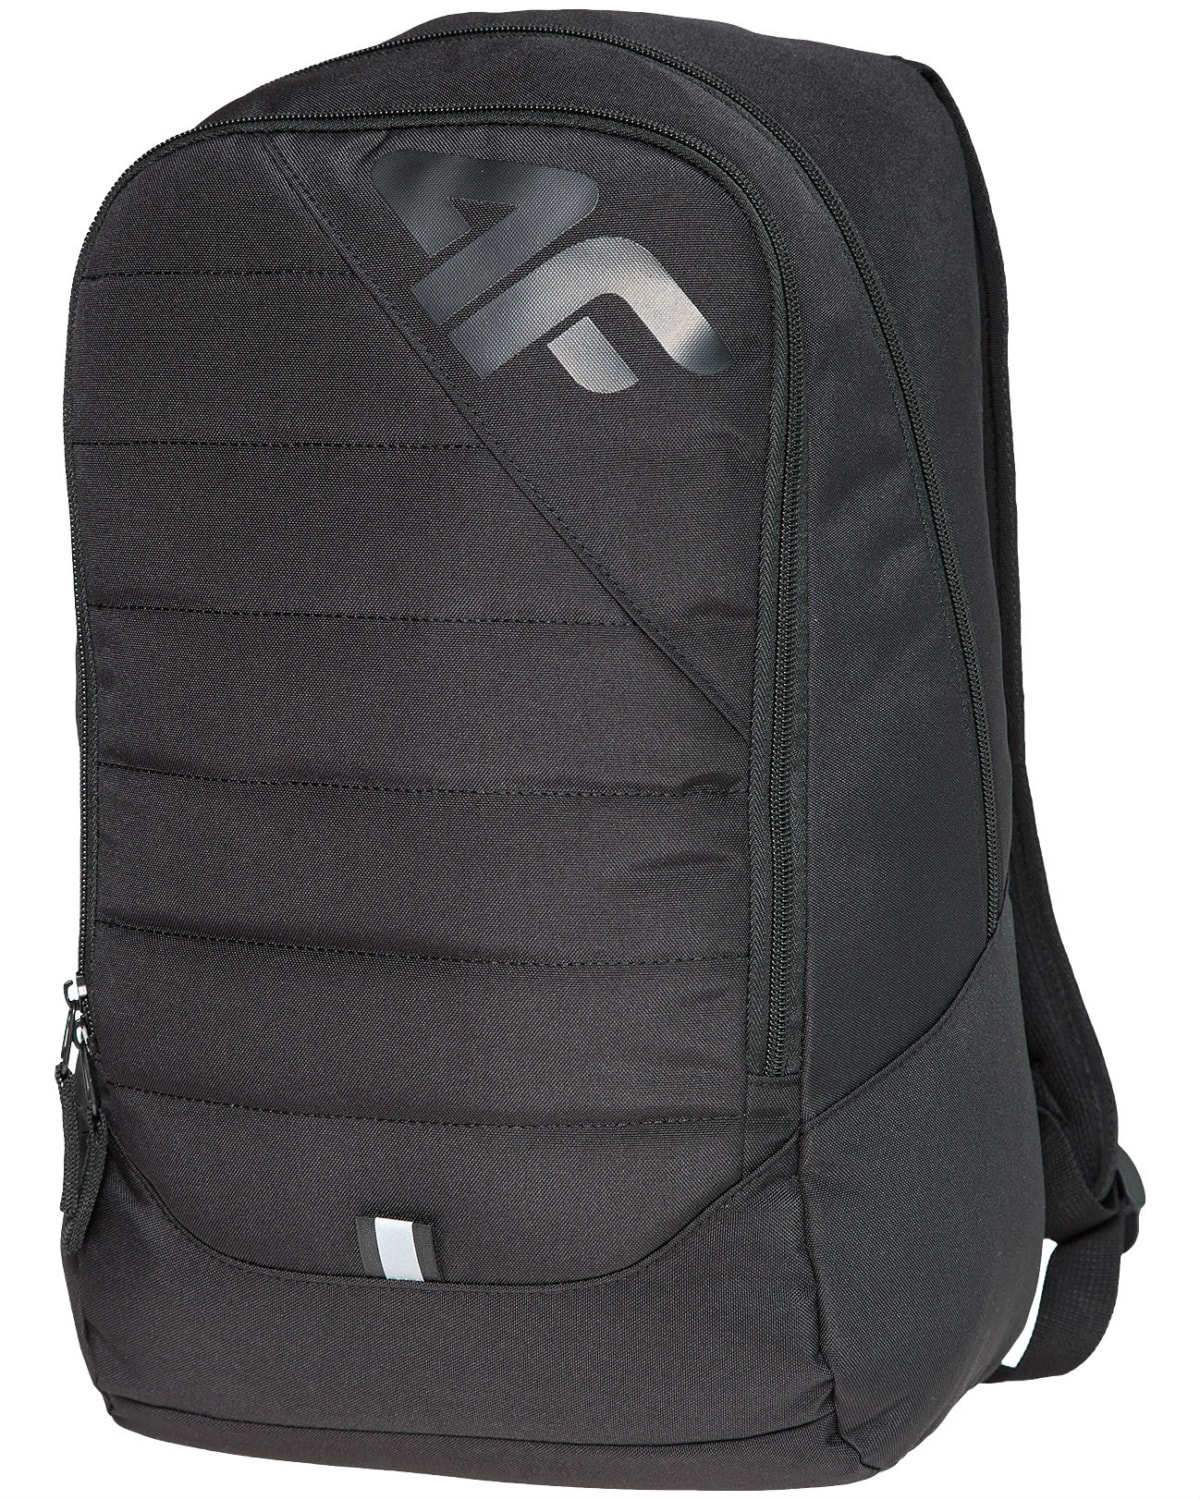 4F Backpack – Black X4Z18-PCU301-DEEP_BLACK